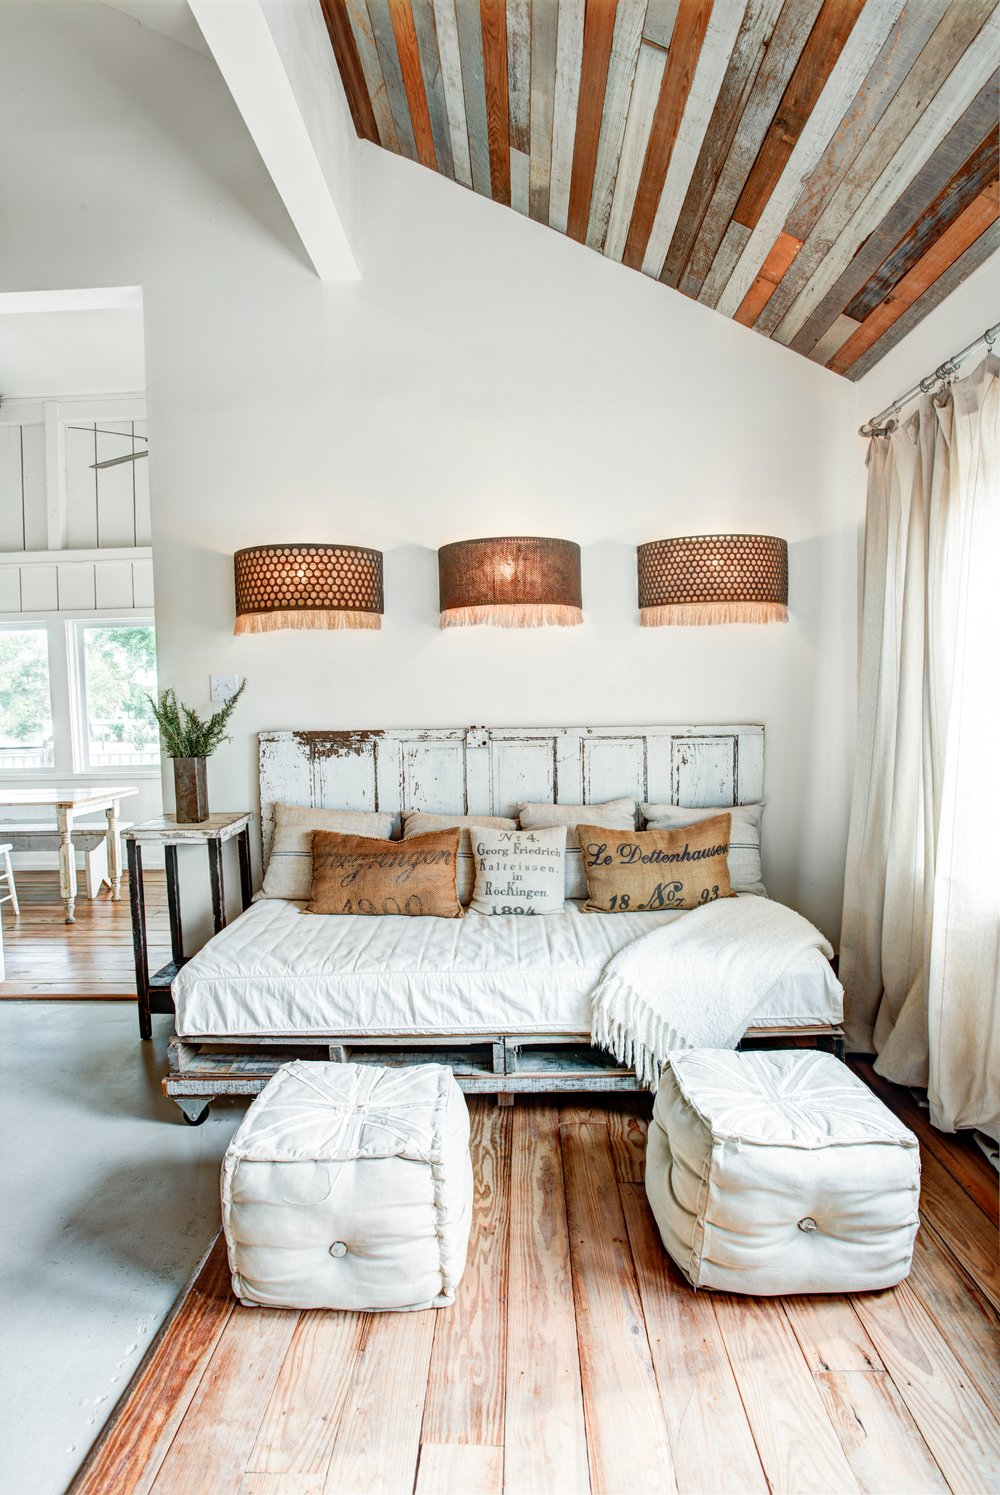 Origin Magazine. Paige's Blog. No. 1450 Daybed. Haylei Smith Photography. Day beds. Styled shoot.